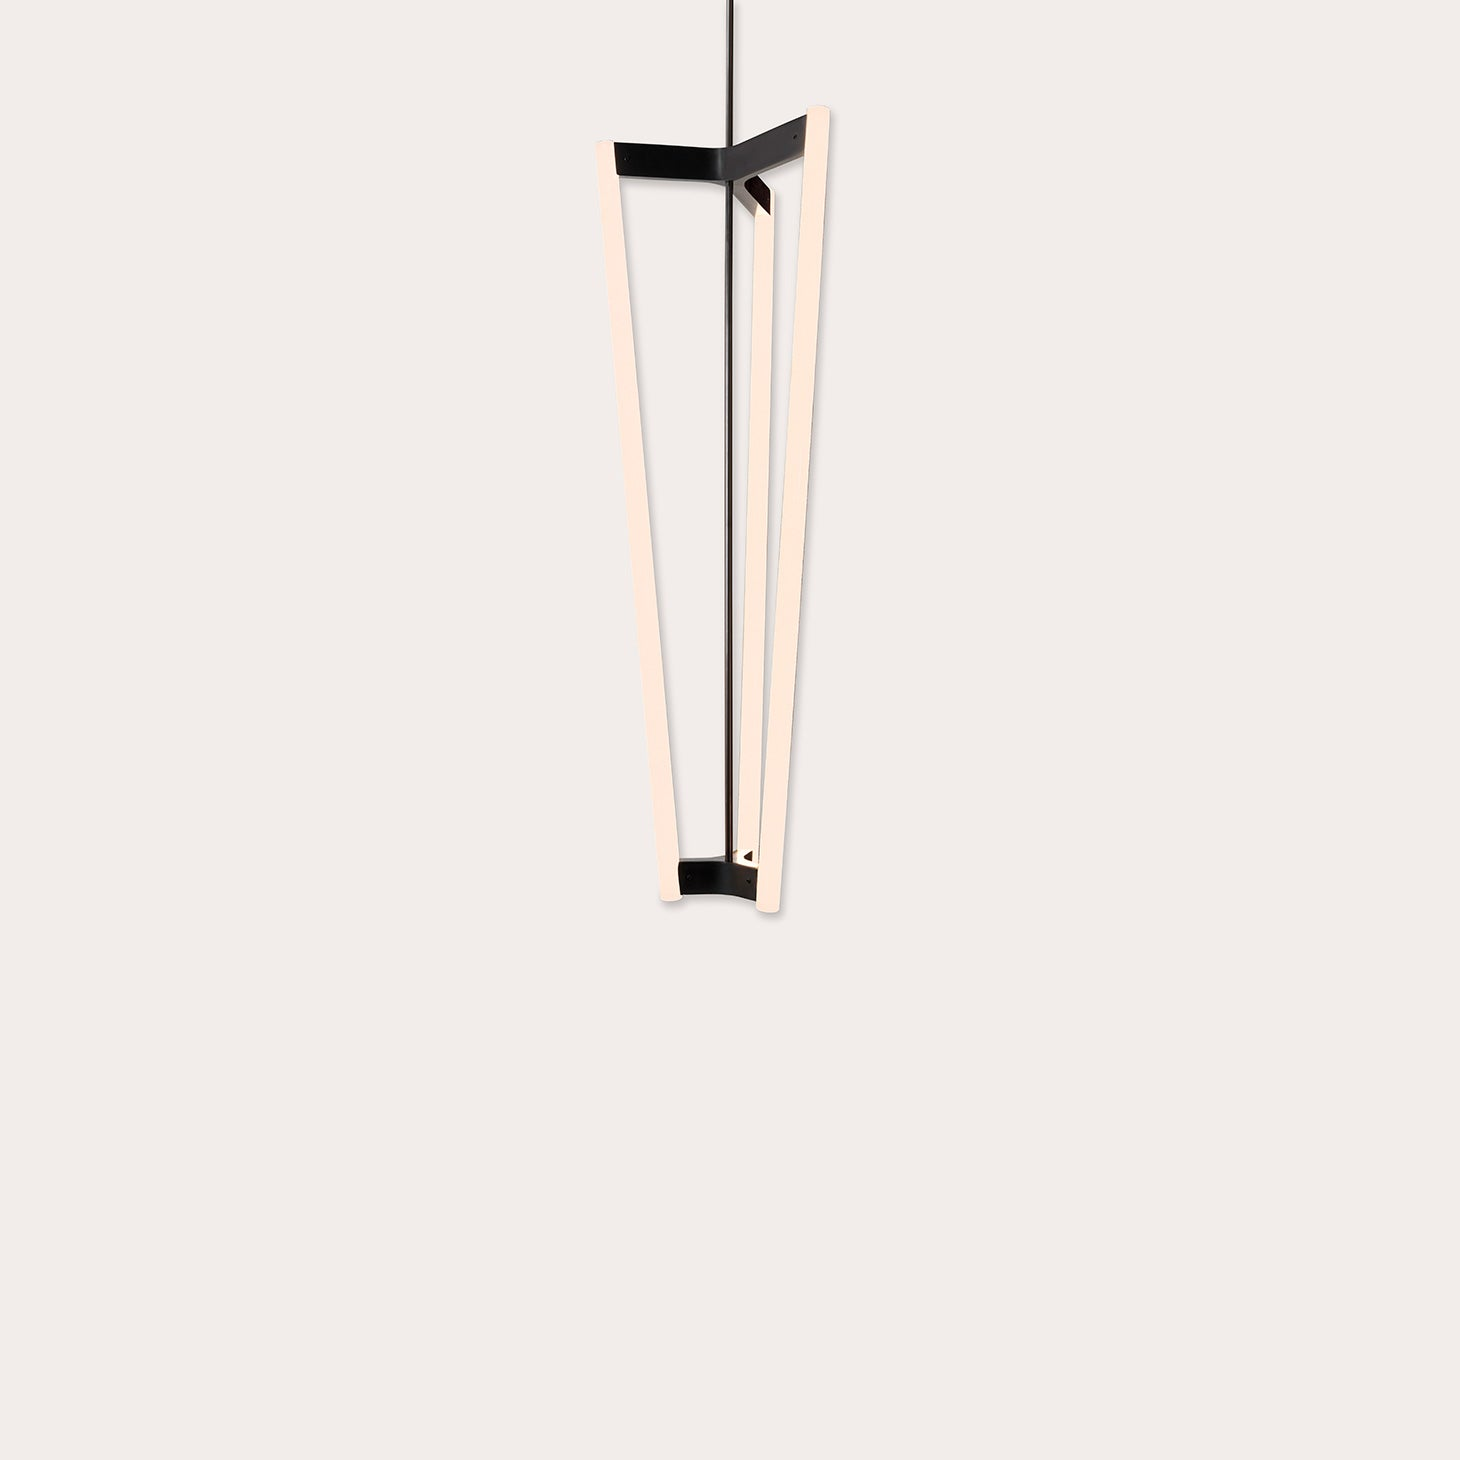 Tube Chandelier Lighting Michael Anastassiades Designer Furniture Sku: 717-100-10065